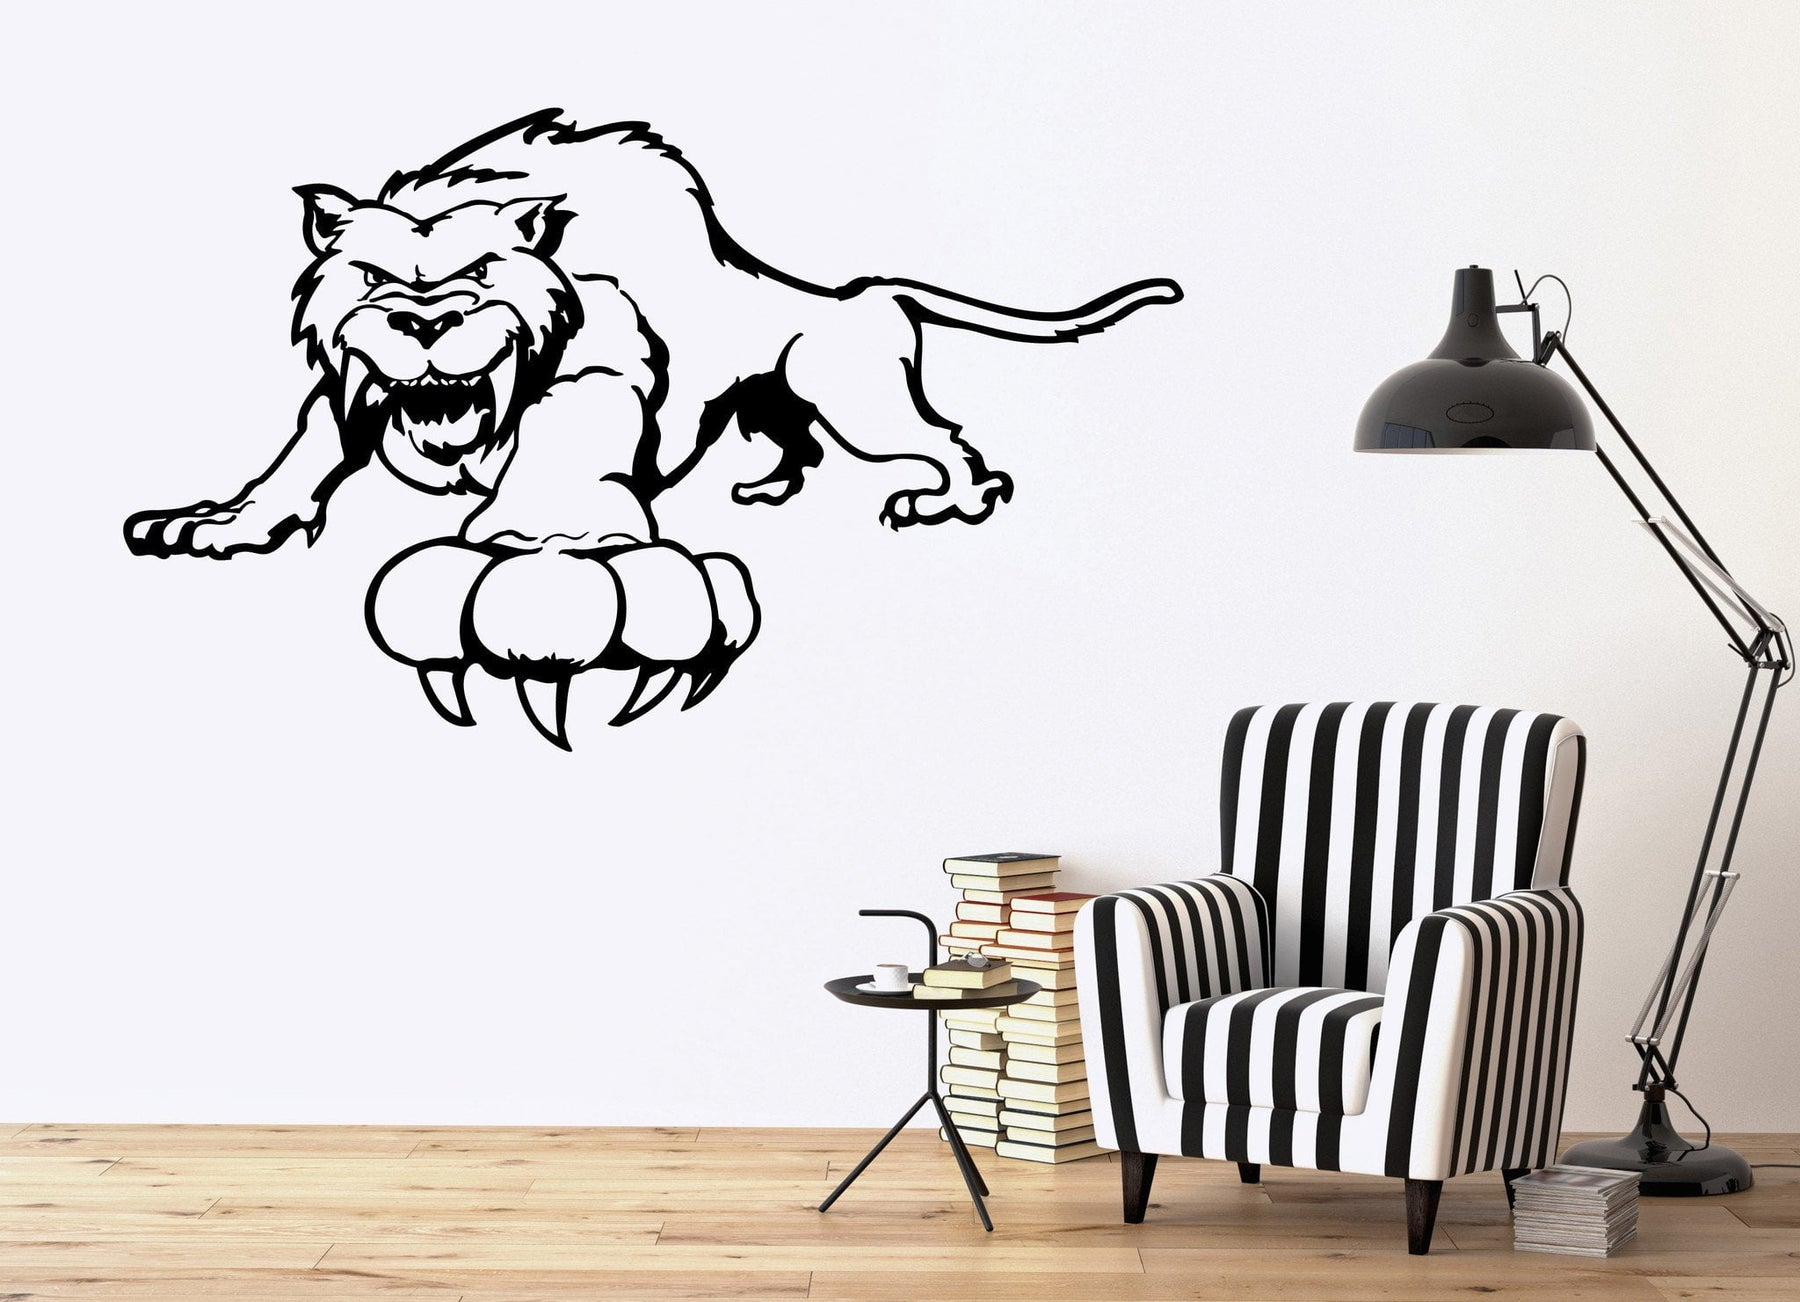 Tiger Wall Stickers Nursery Animal Tribal Predator For Kids Vinyl Decal Unique Gift (ig889)